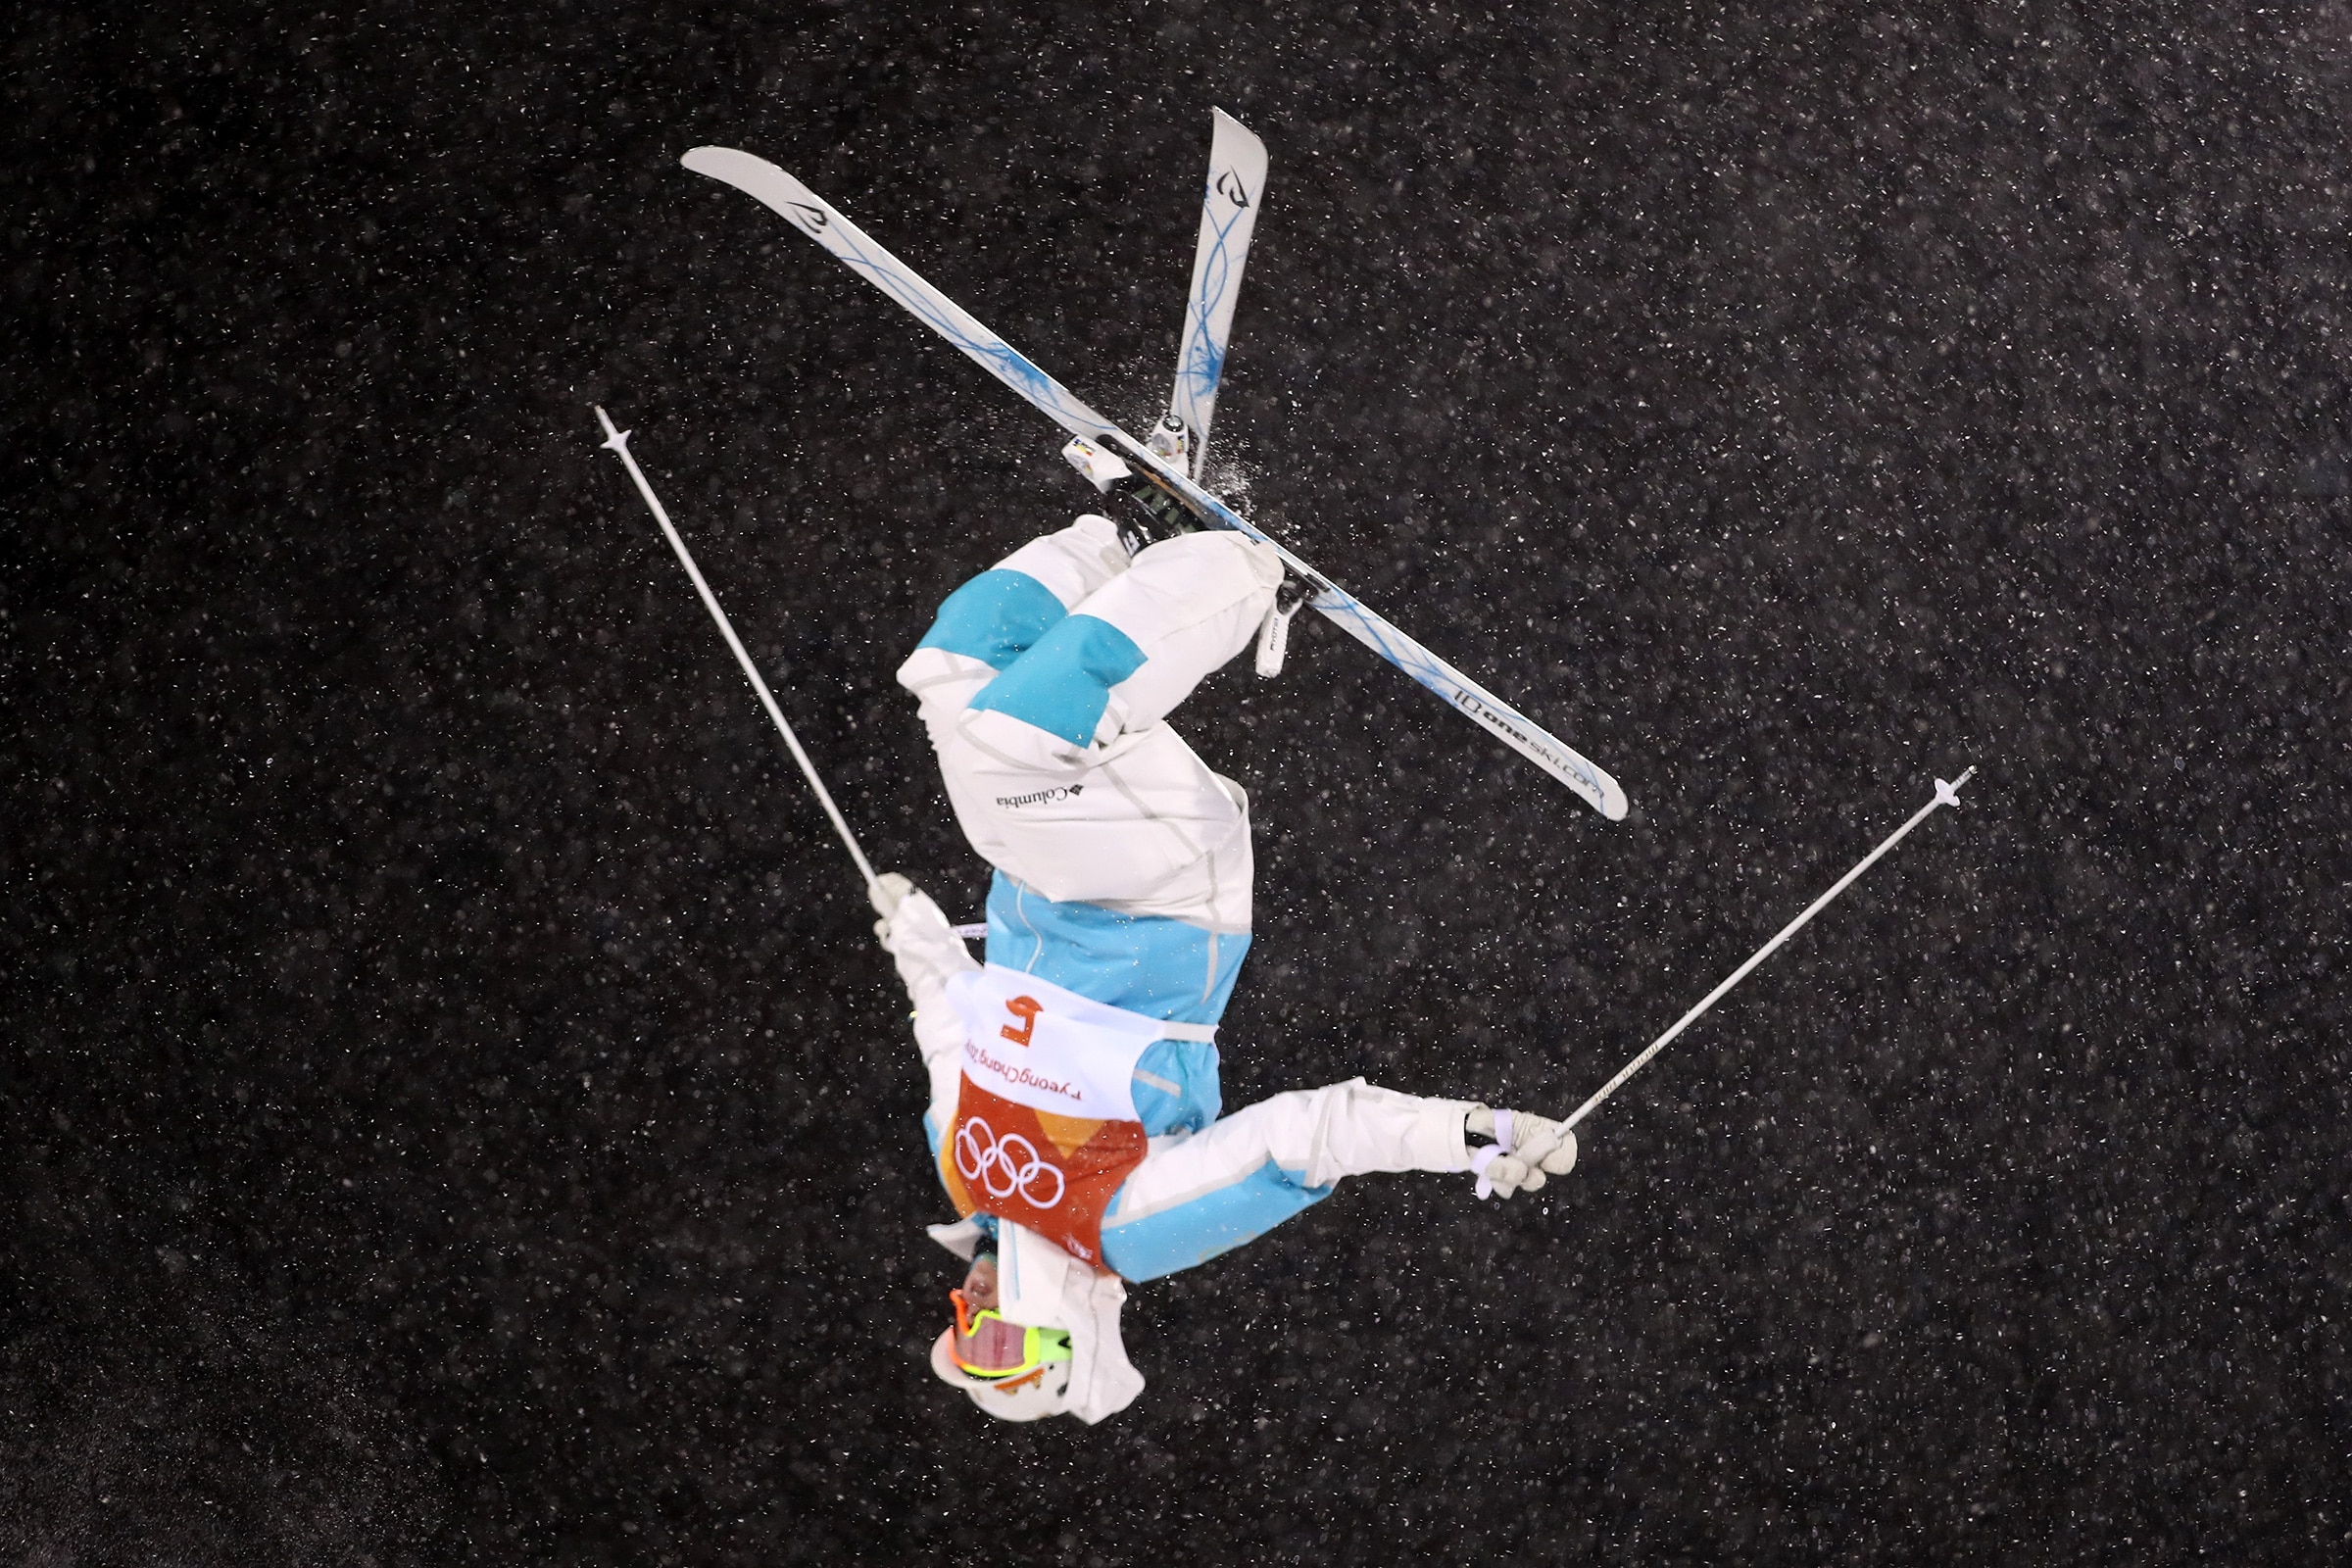 Freestyle Skiing - Ladies' Moguls